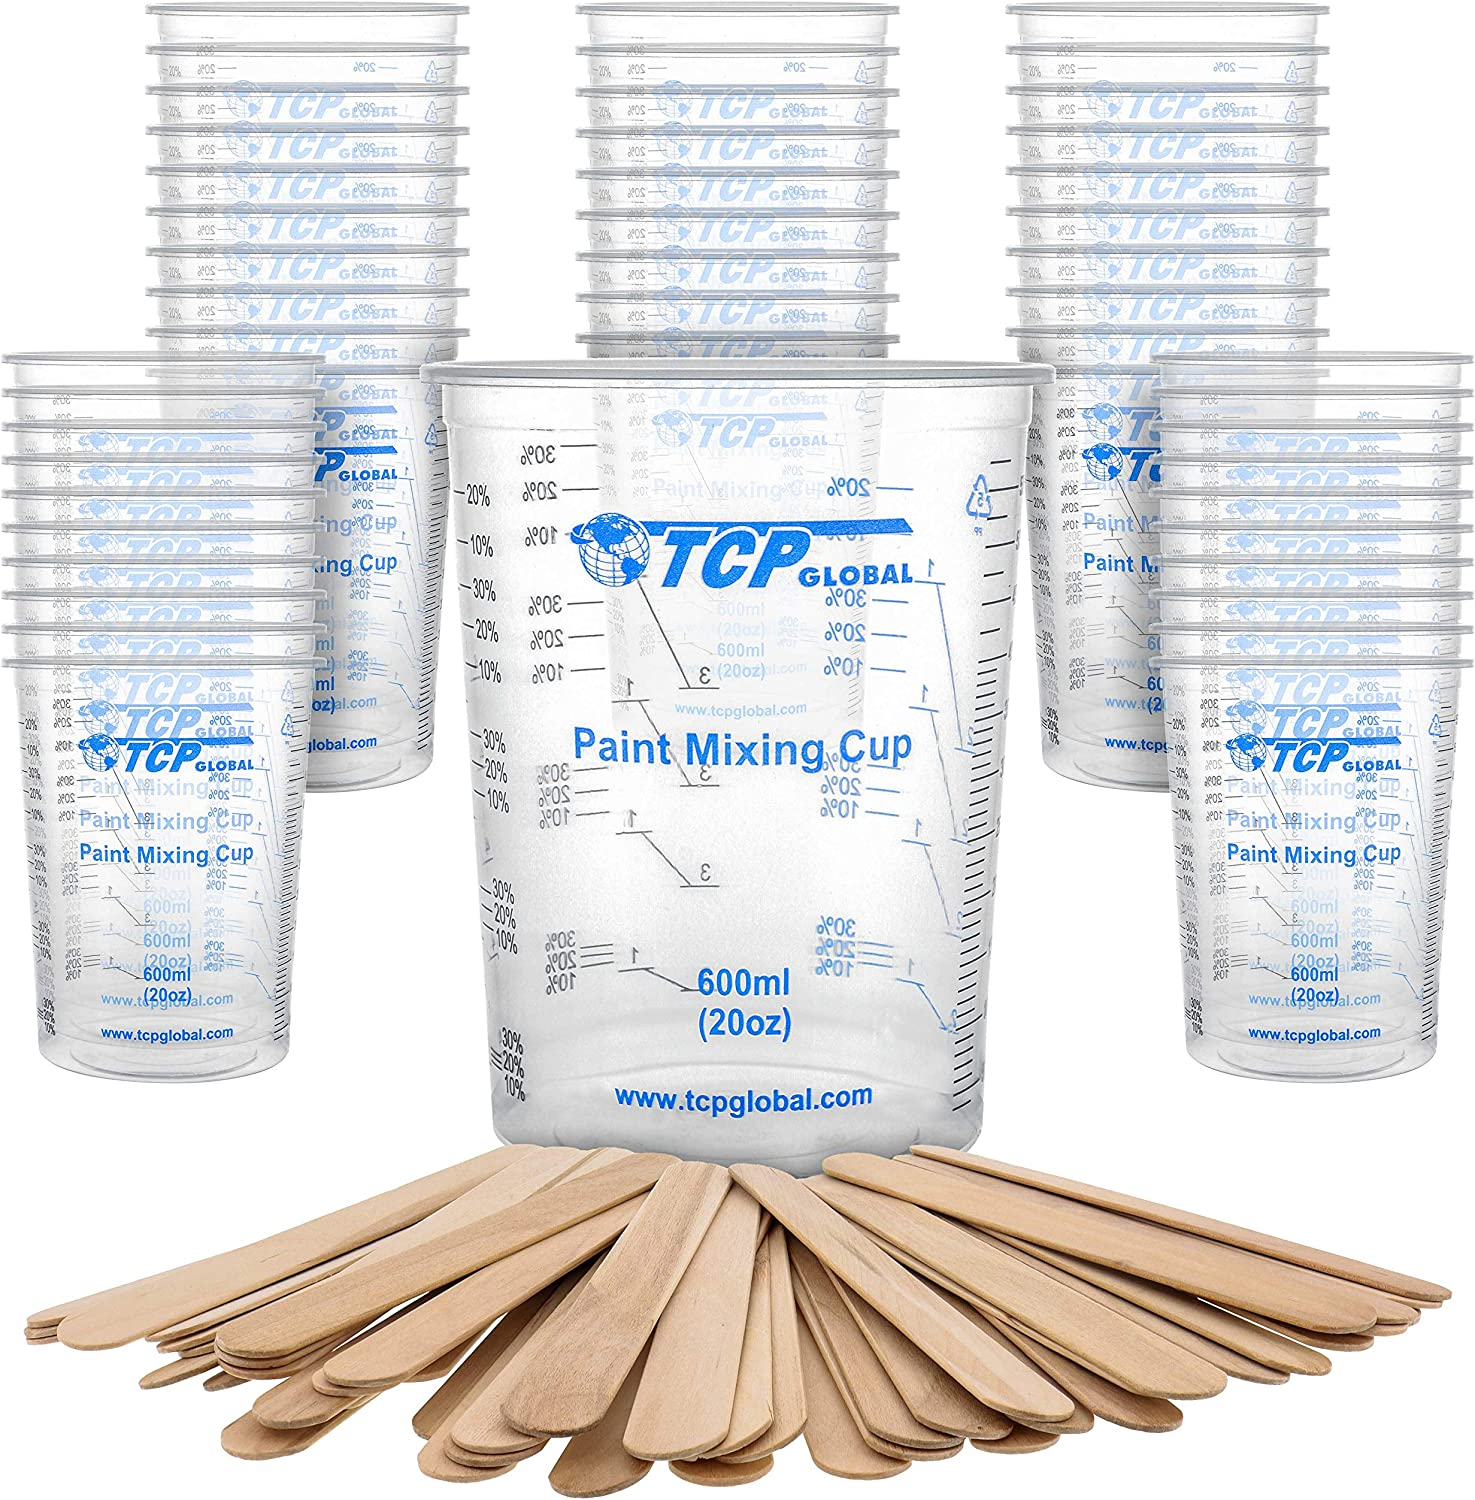 Measuring Ratios 2-1 Art 4-1 Baking Disposable Flexible Clear Graduated Plastic Mixing Cups Epoxy ML 3-1 Use for Paint Resin 1000ml TCP Global 32 Ounce Kitchen Box of 50 Cups Cooking